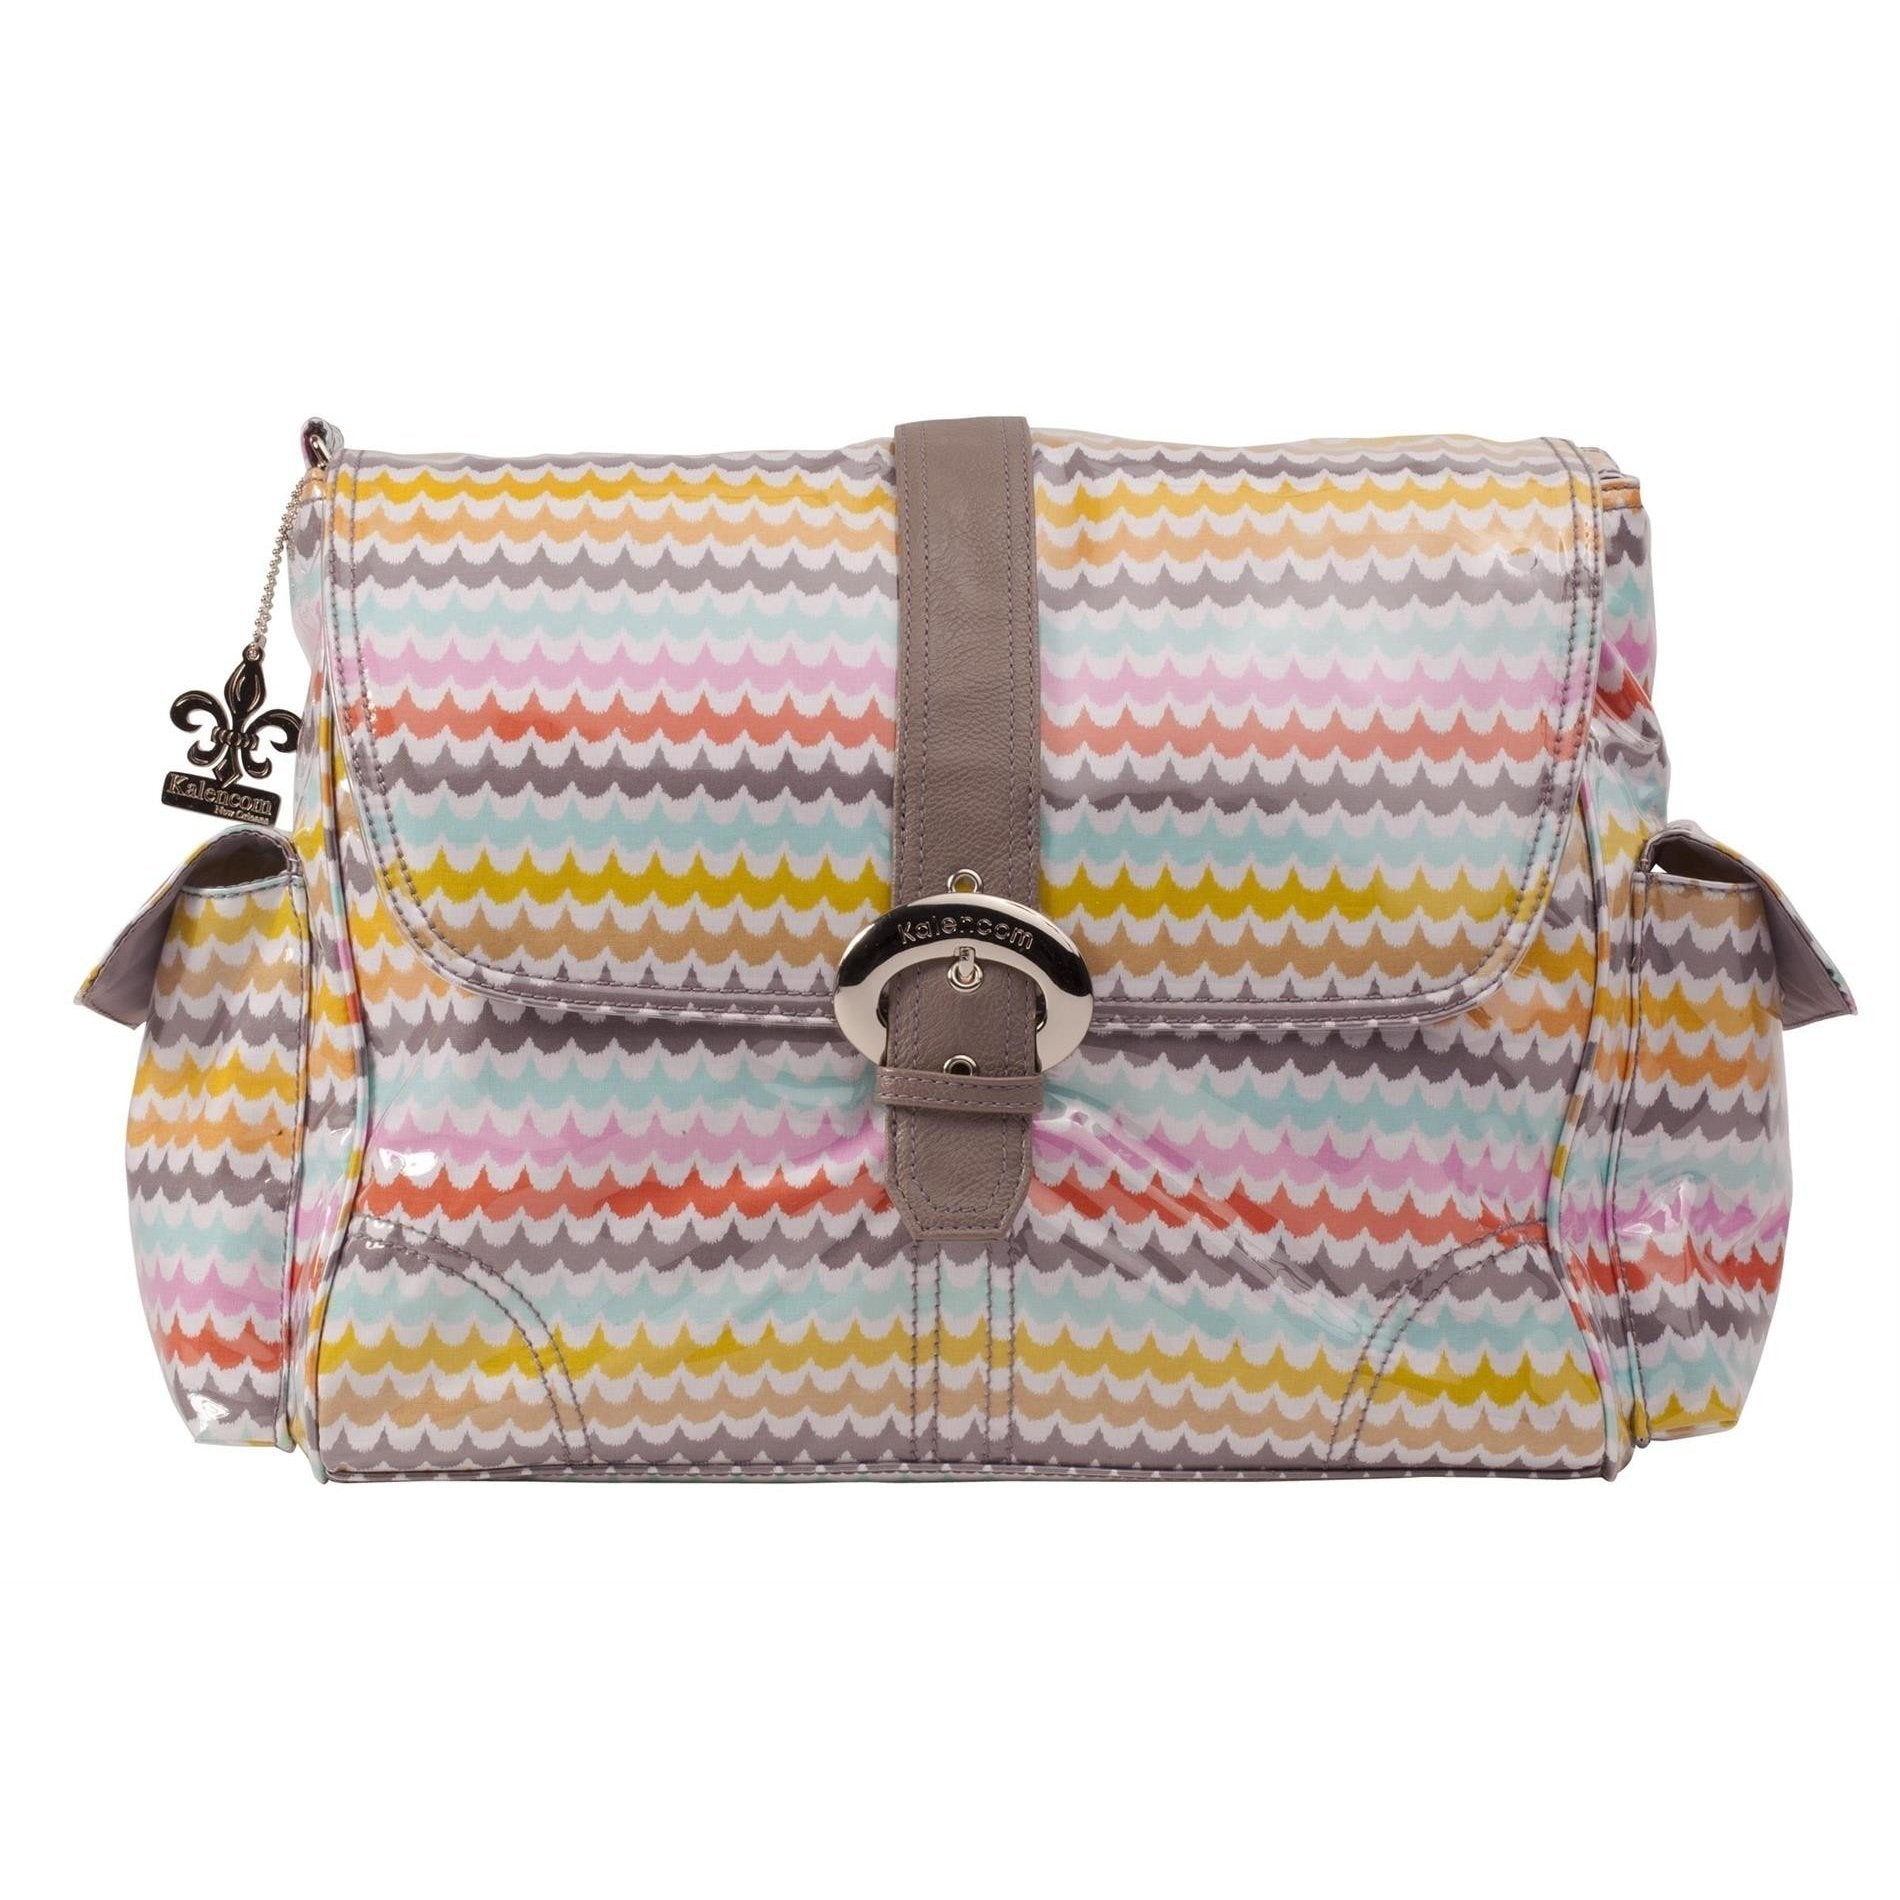 Spa Laminated Buckle Diaper Bag | Style 2960 - Kalencom-Diaper Bags-Jack and Jill Boutique